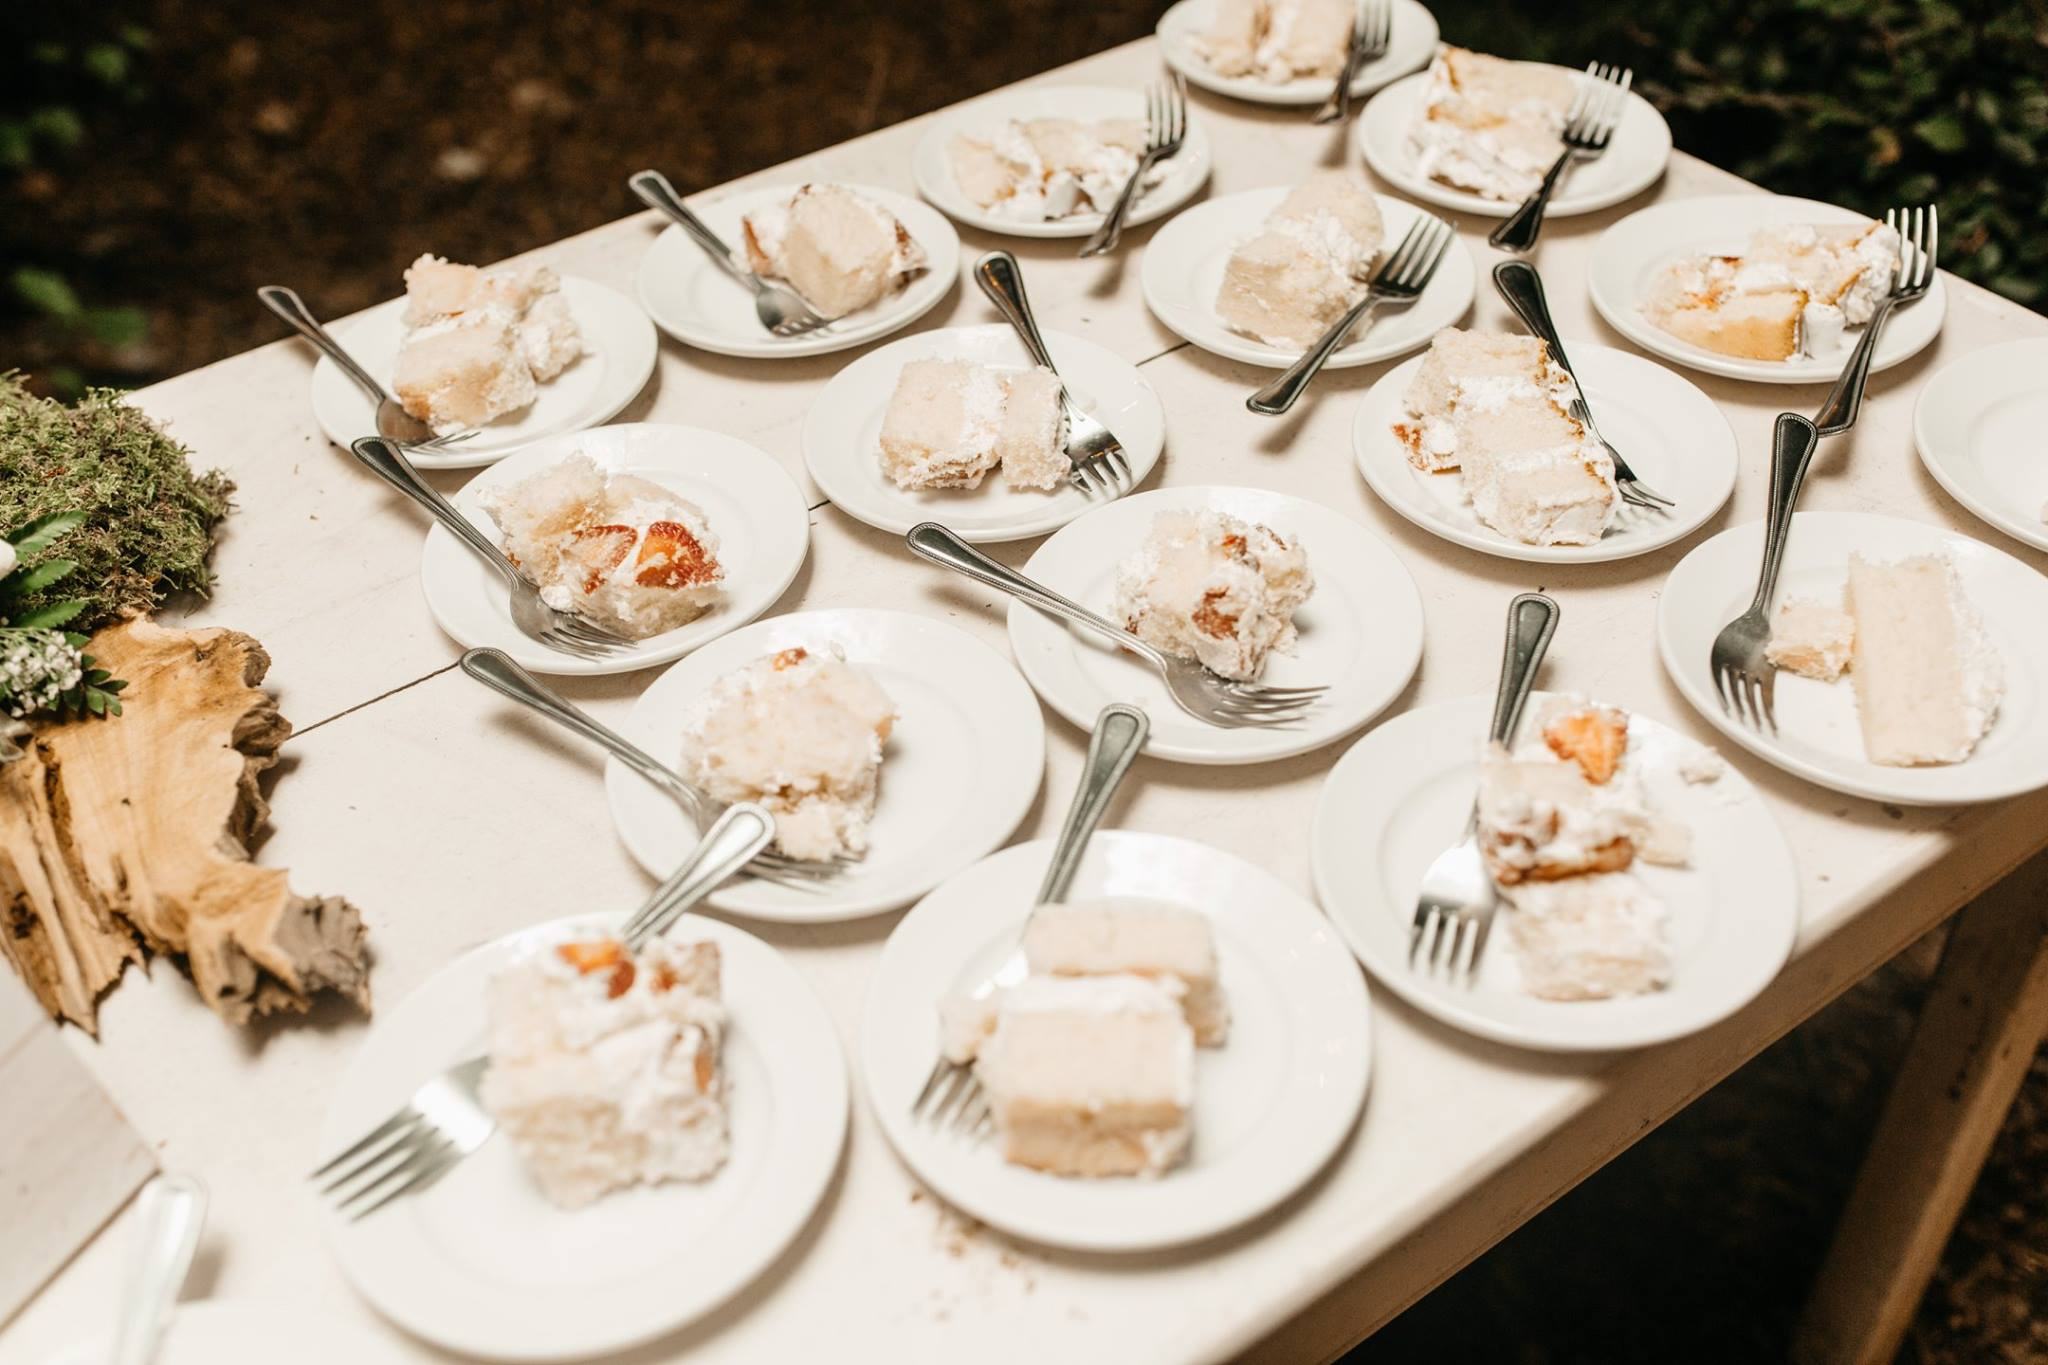 wedding cake on plates